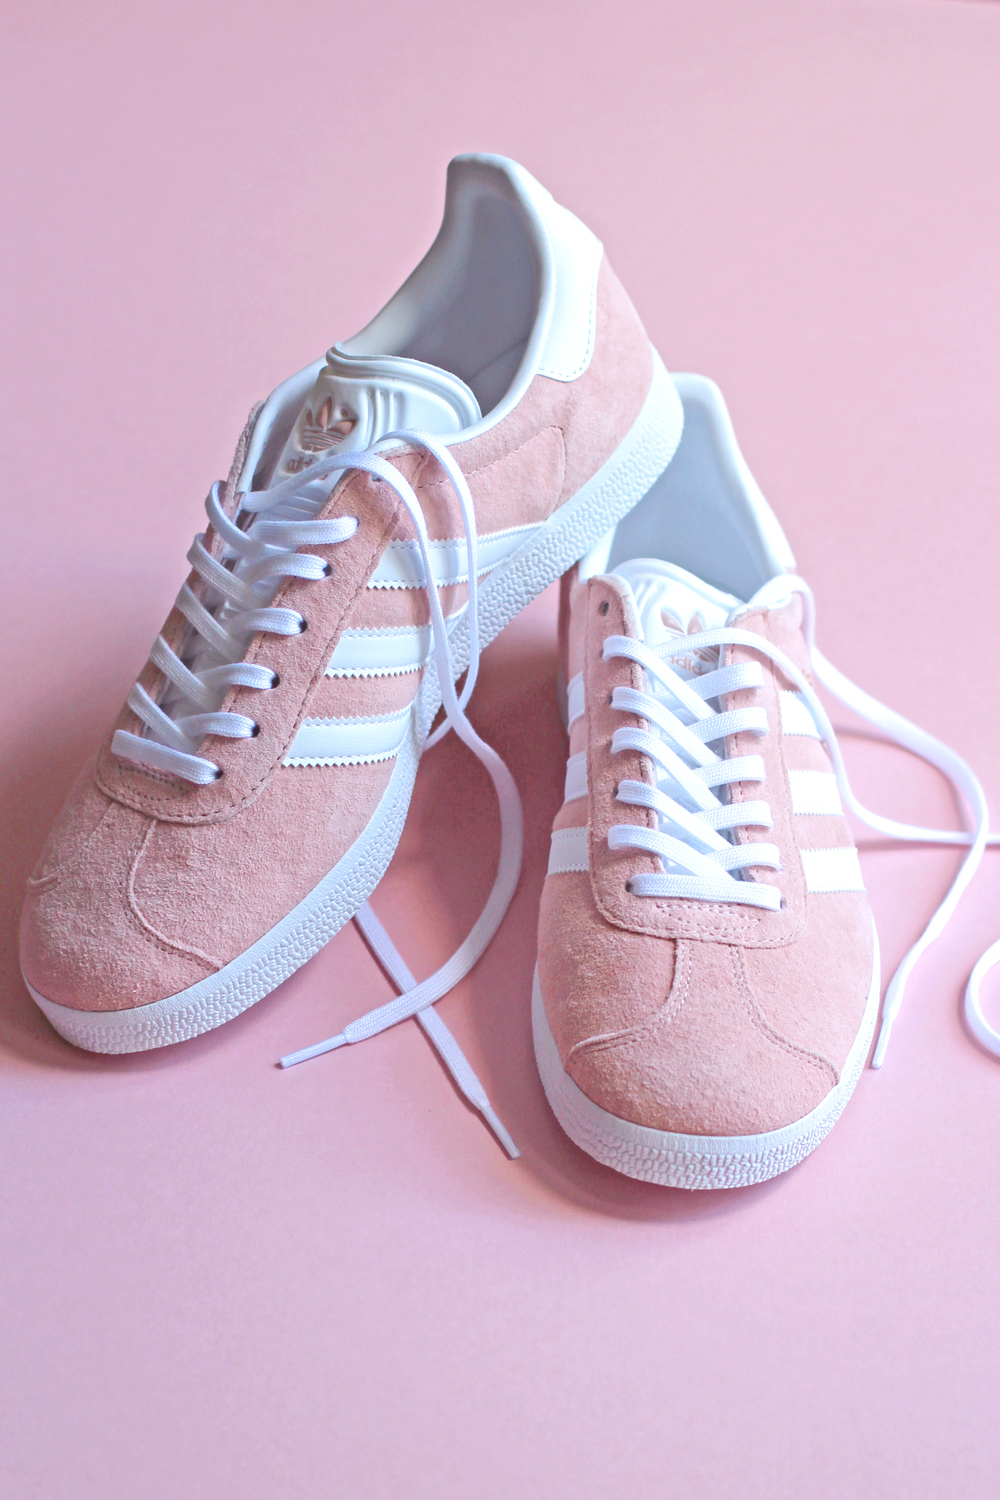 Pink suede Adidas Gazelle sneakers - London style blogger